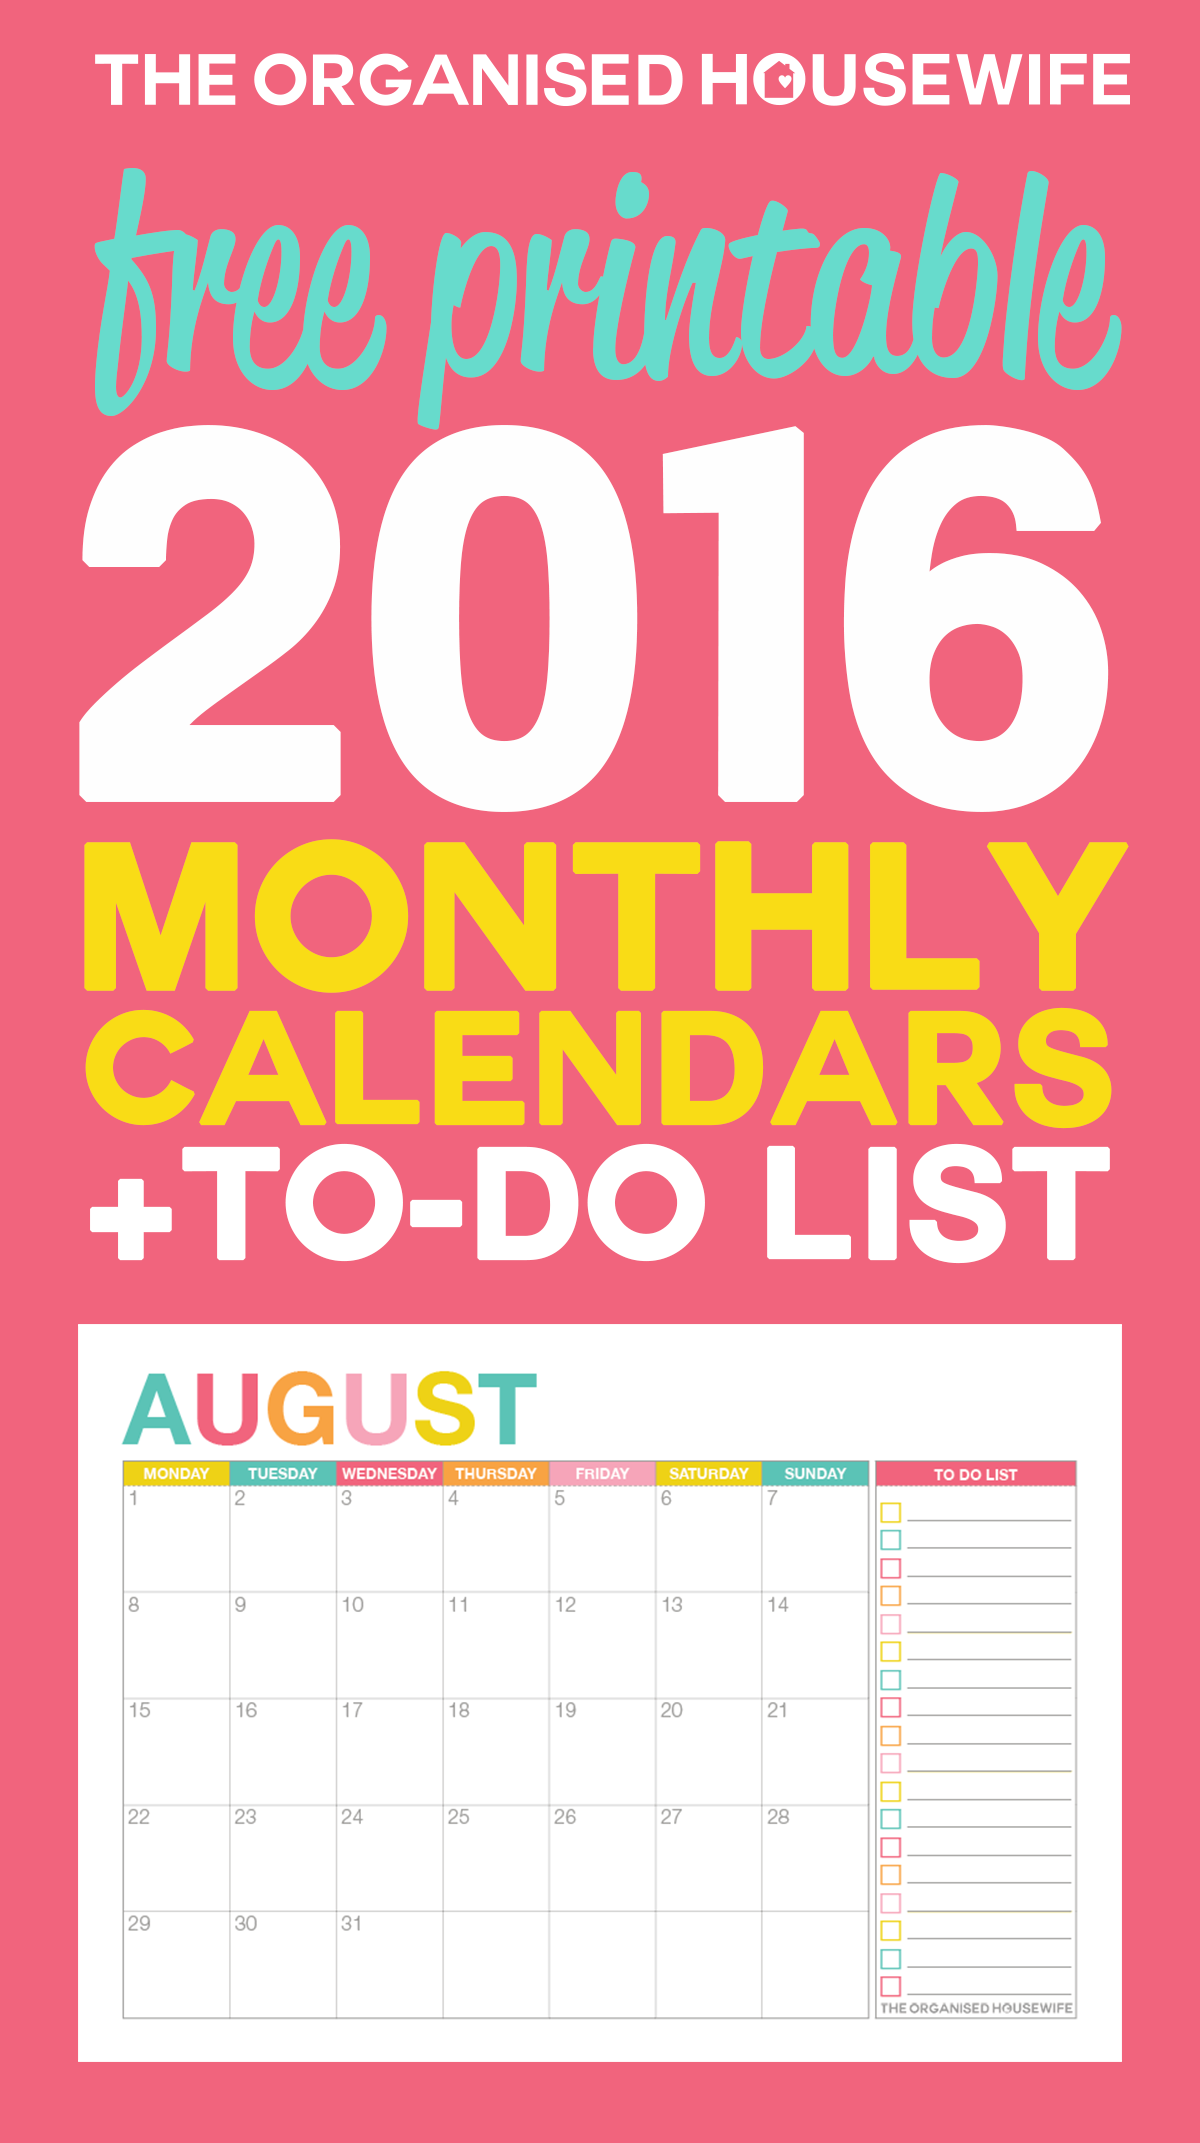 Free Printable 2016 Monthly Calendar with To-Do List – The Organised ...